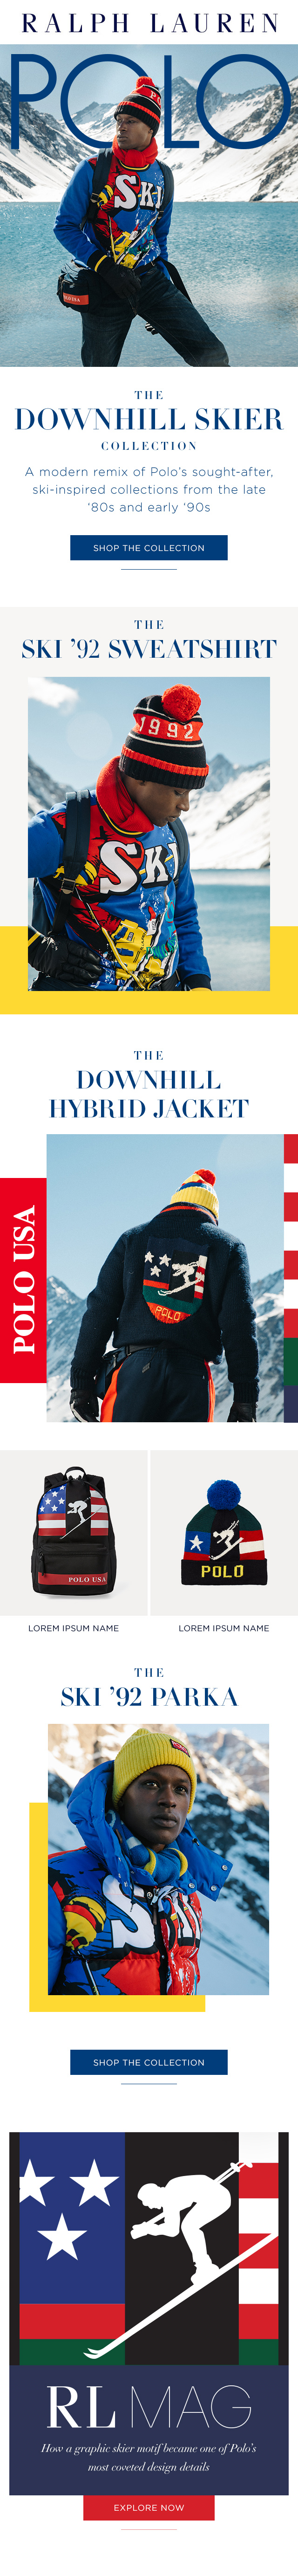 Polo Downhill Skier Collection.jpg